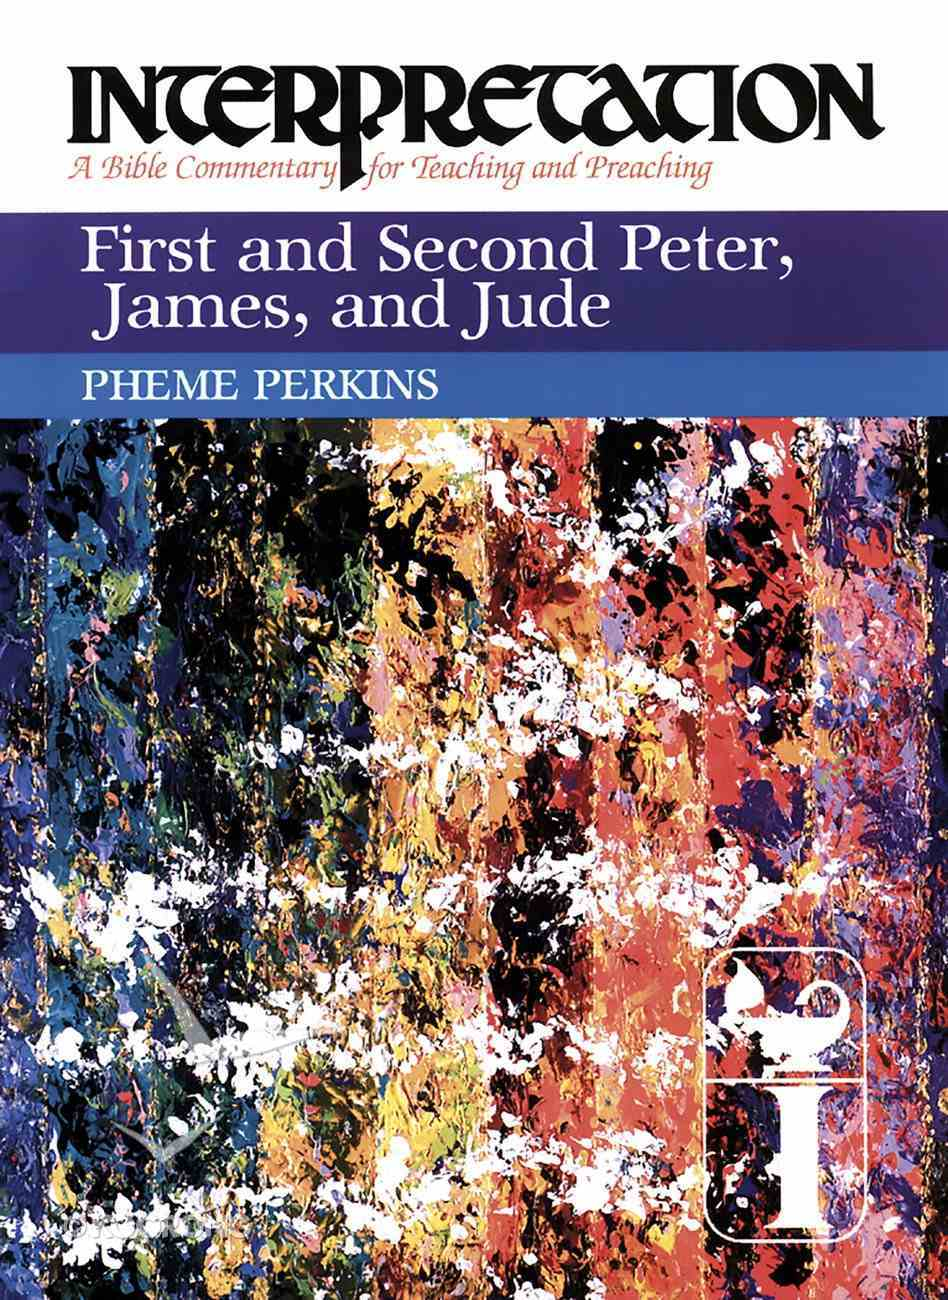 First and Second Peter, James and Jude (Interpretation Bible Commentaries Series) eBook